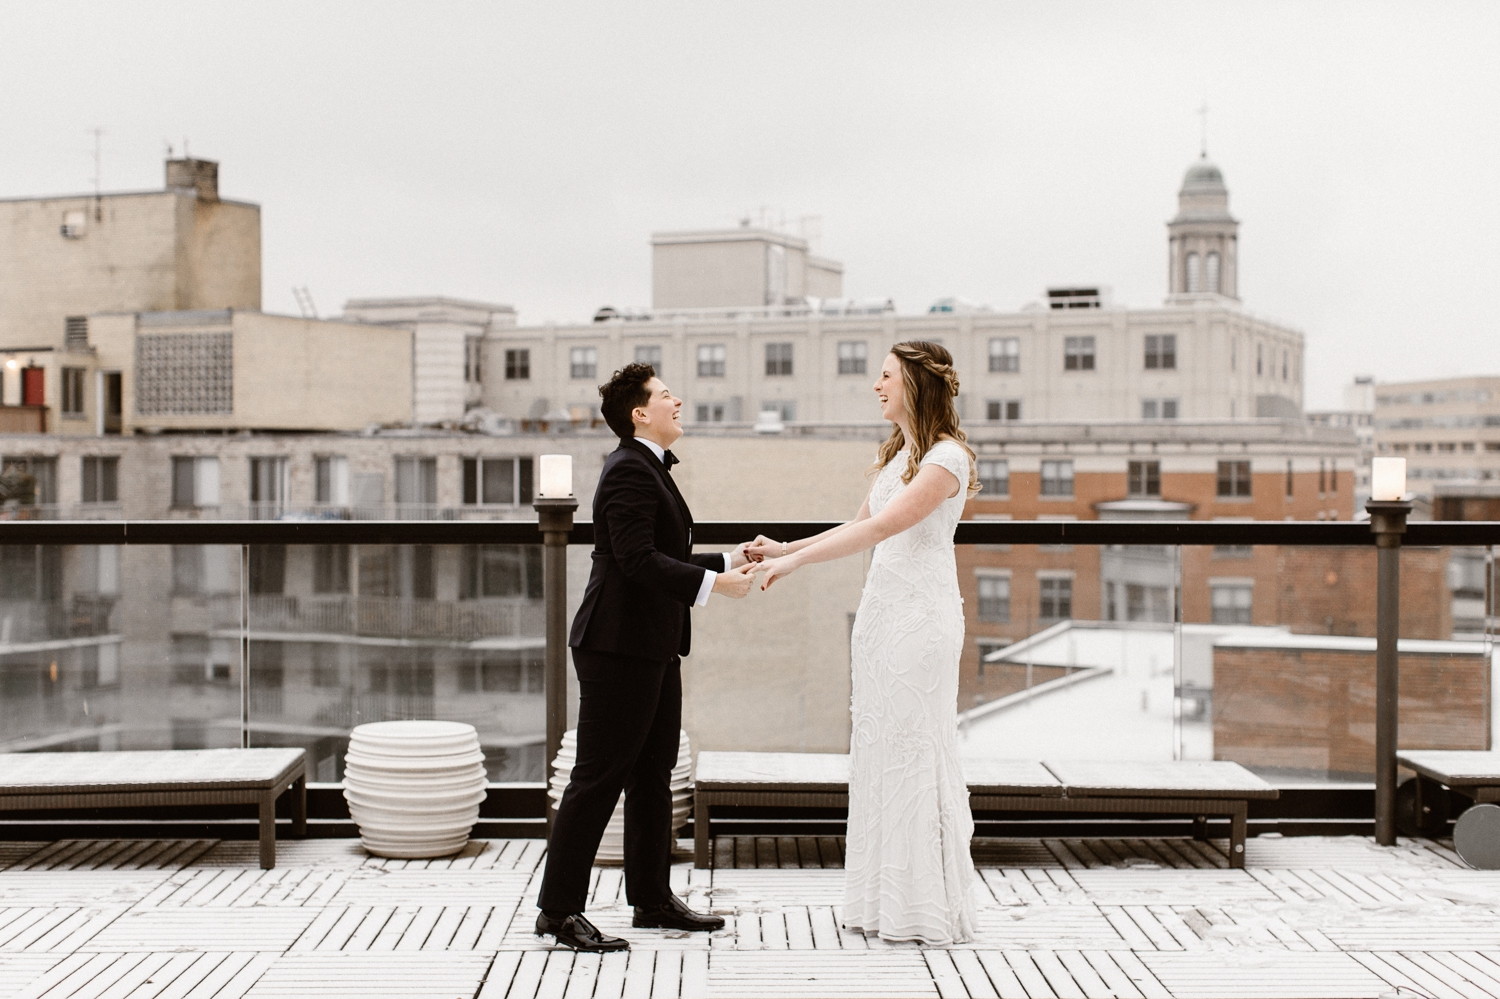 mason-and-rook-first-look-rooftop-josephine-butler-parks-wedding-photographer 47.jpg